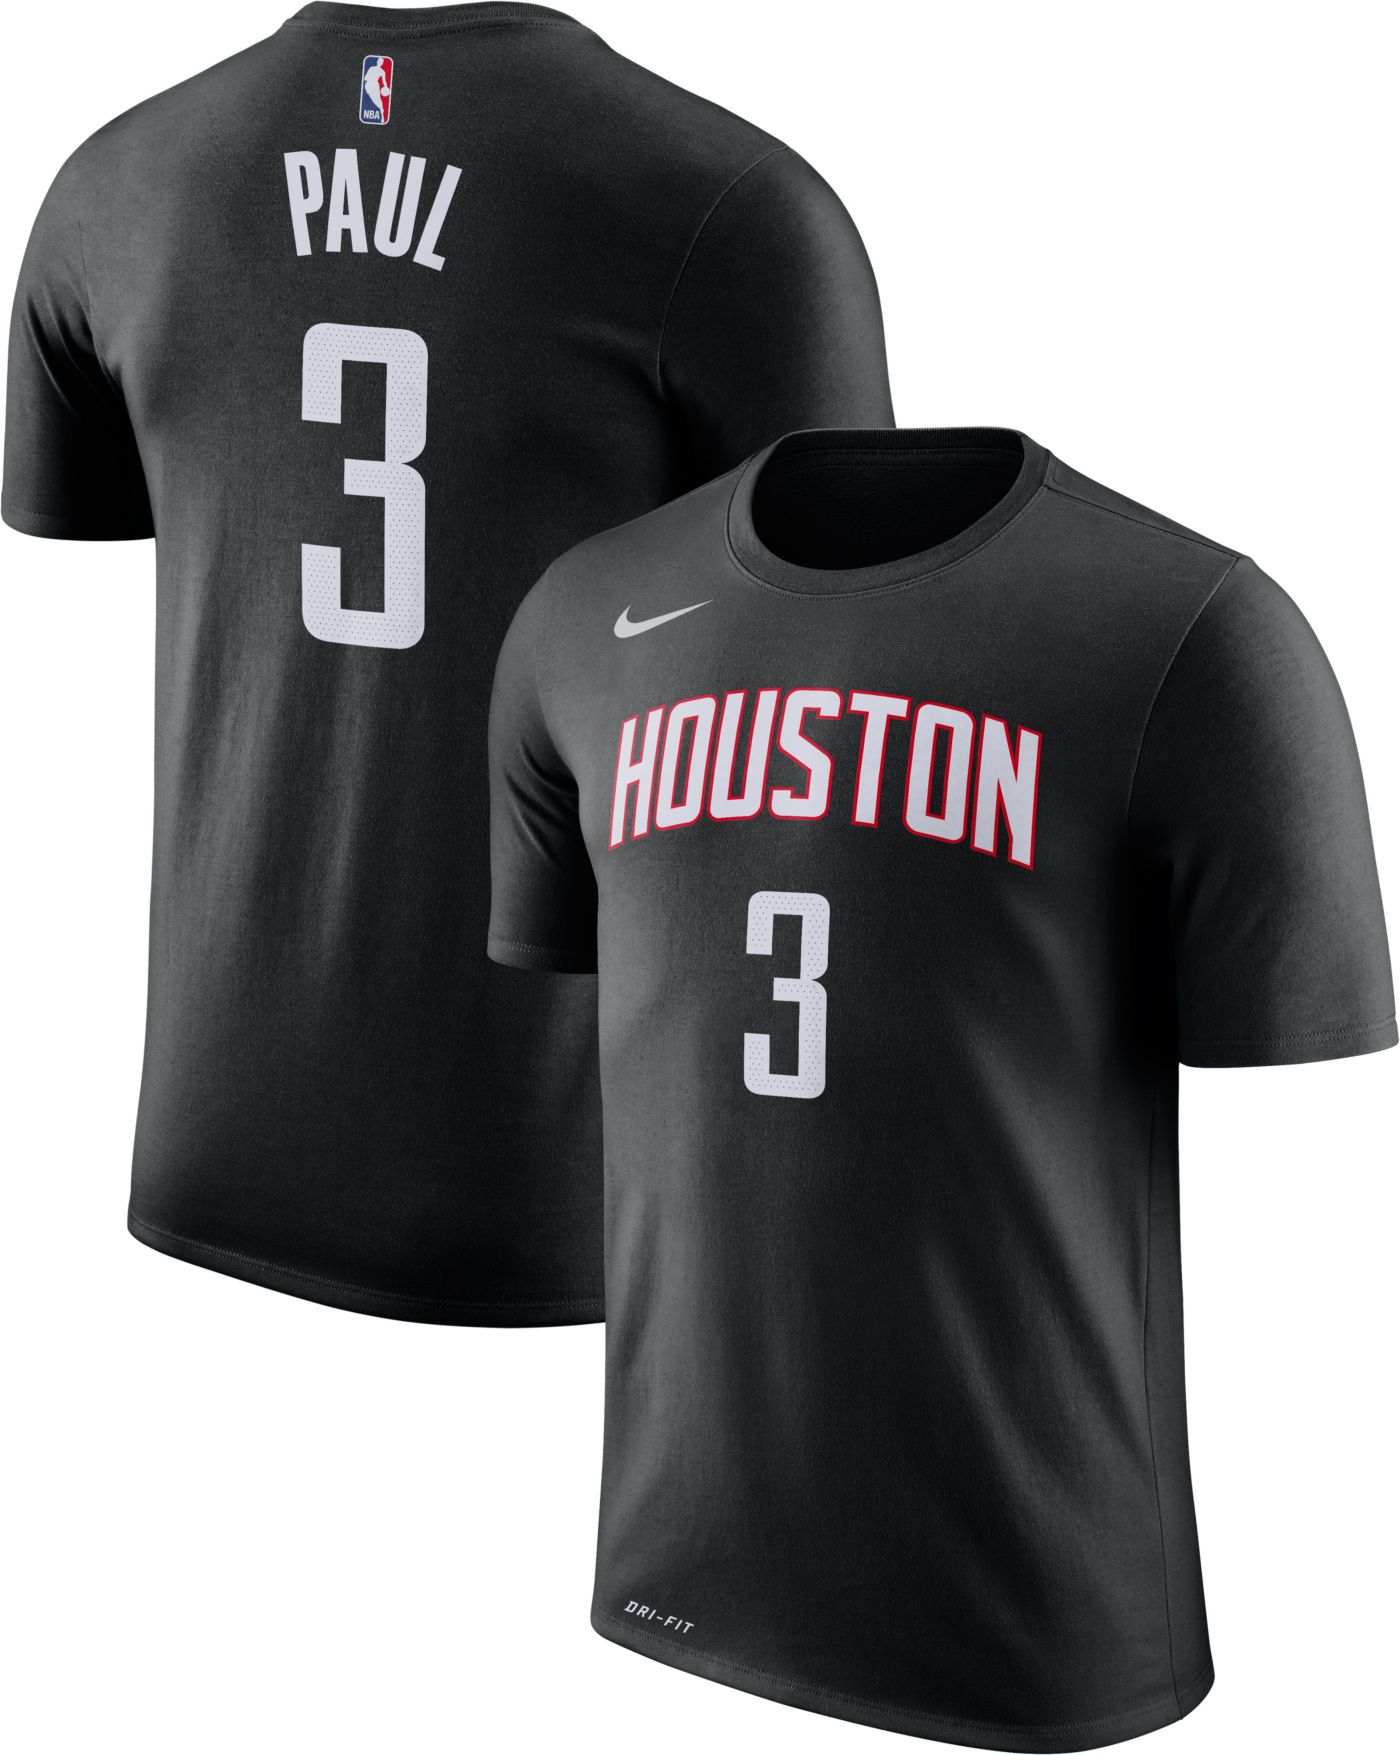 Nike Youth Houston Rockets Chris Paul #3 Dri-FIT Black T-Shirt